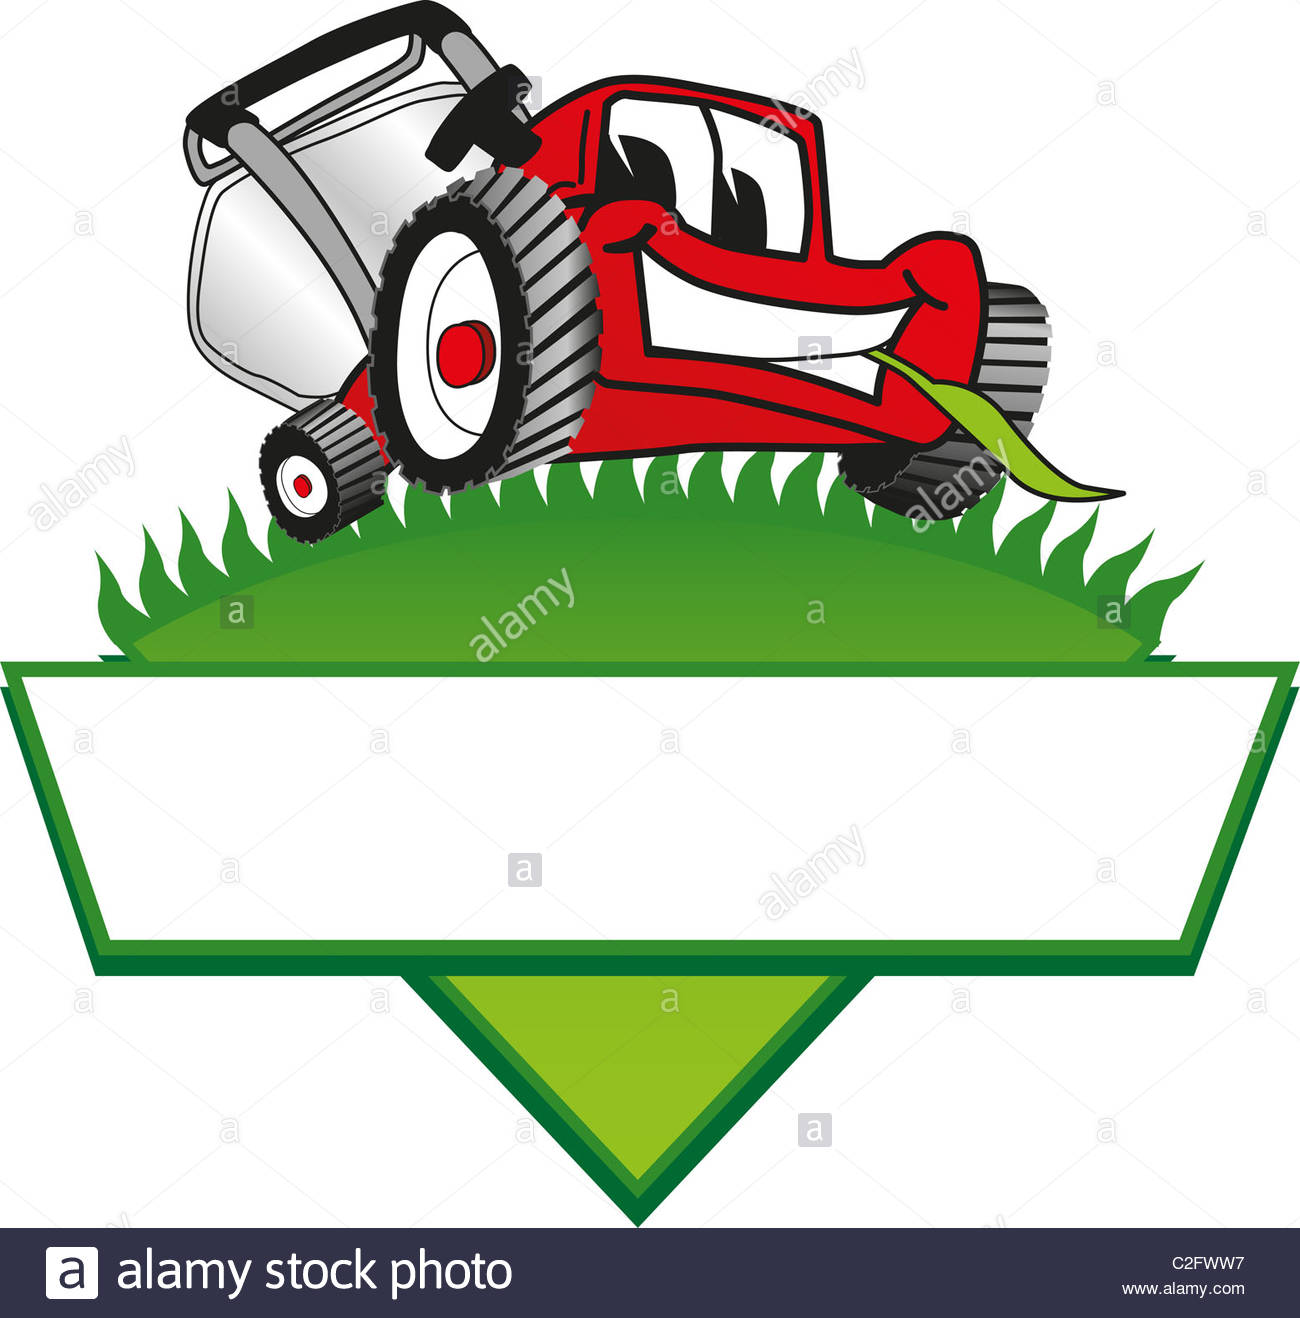 736 Lawn Mower free clipart.